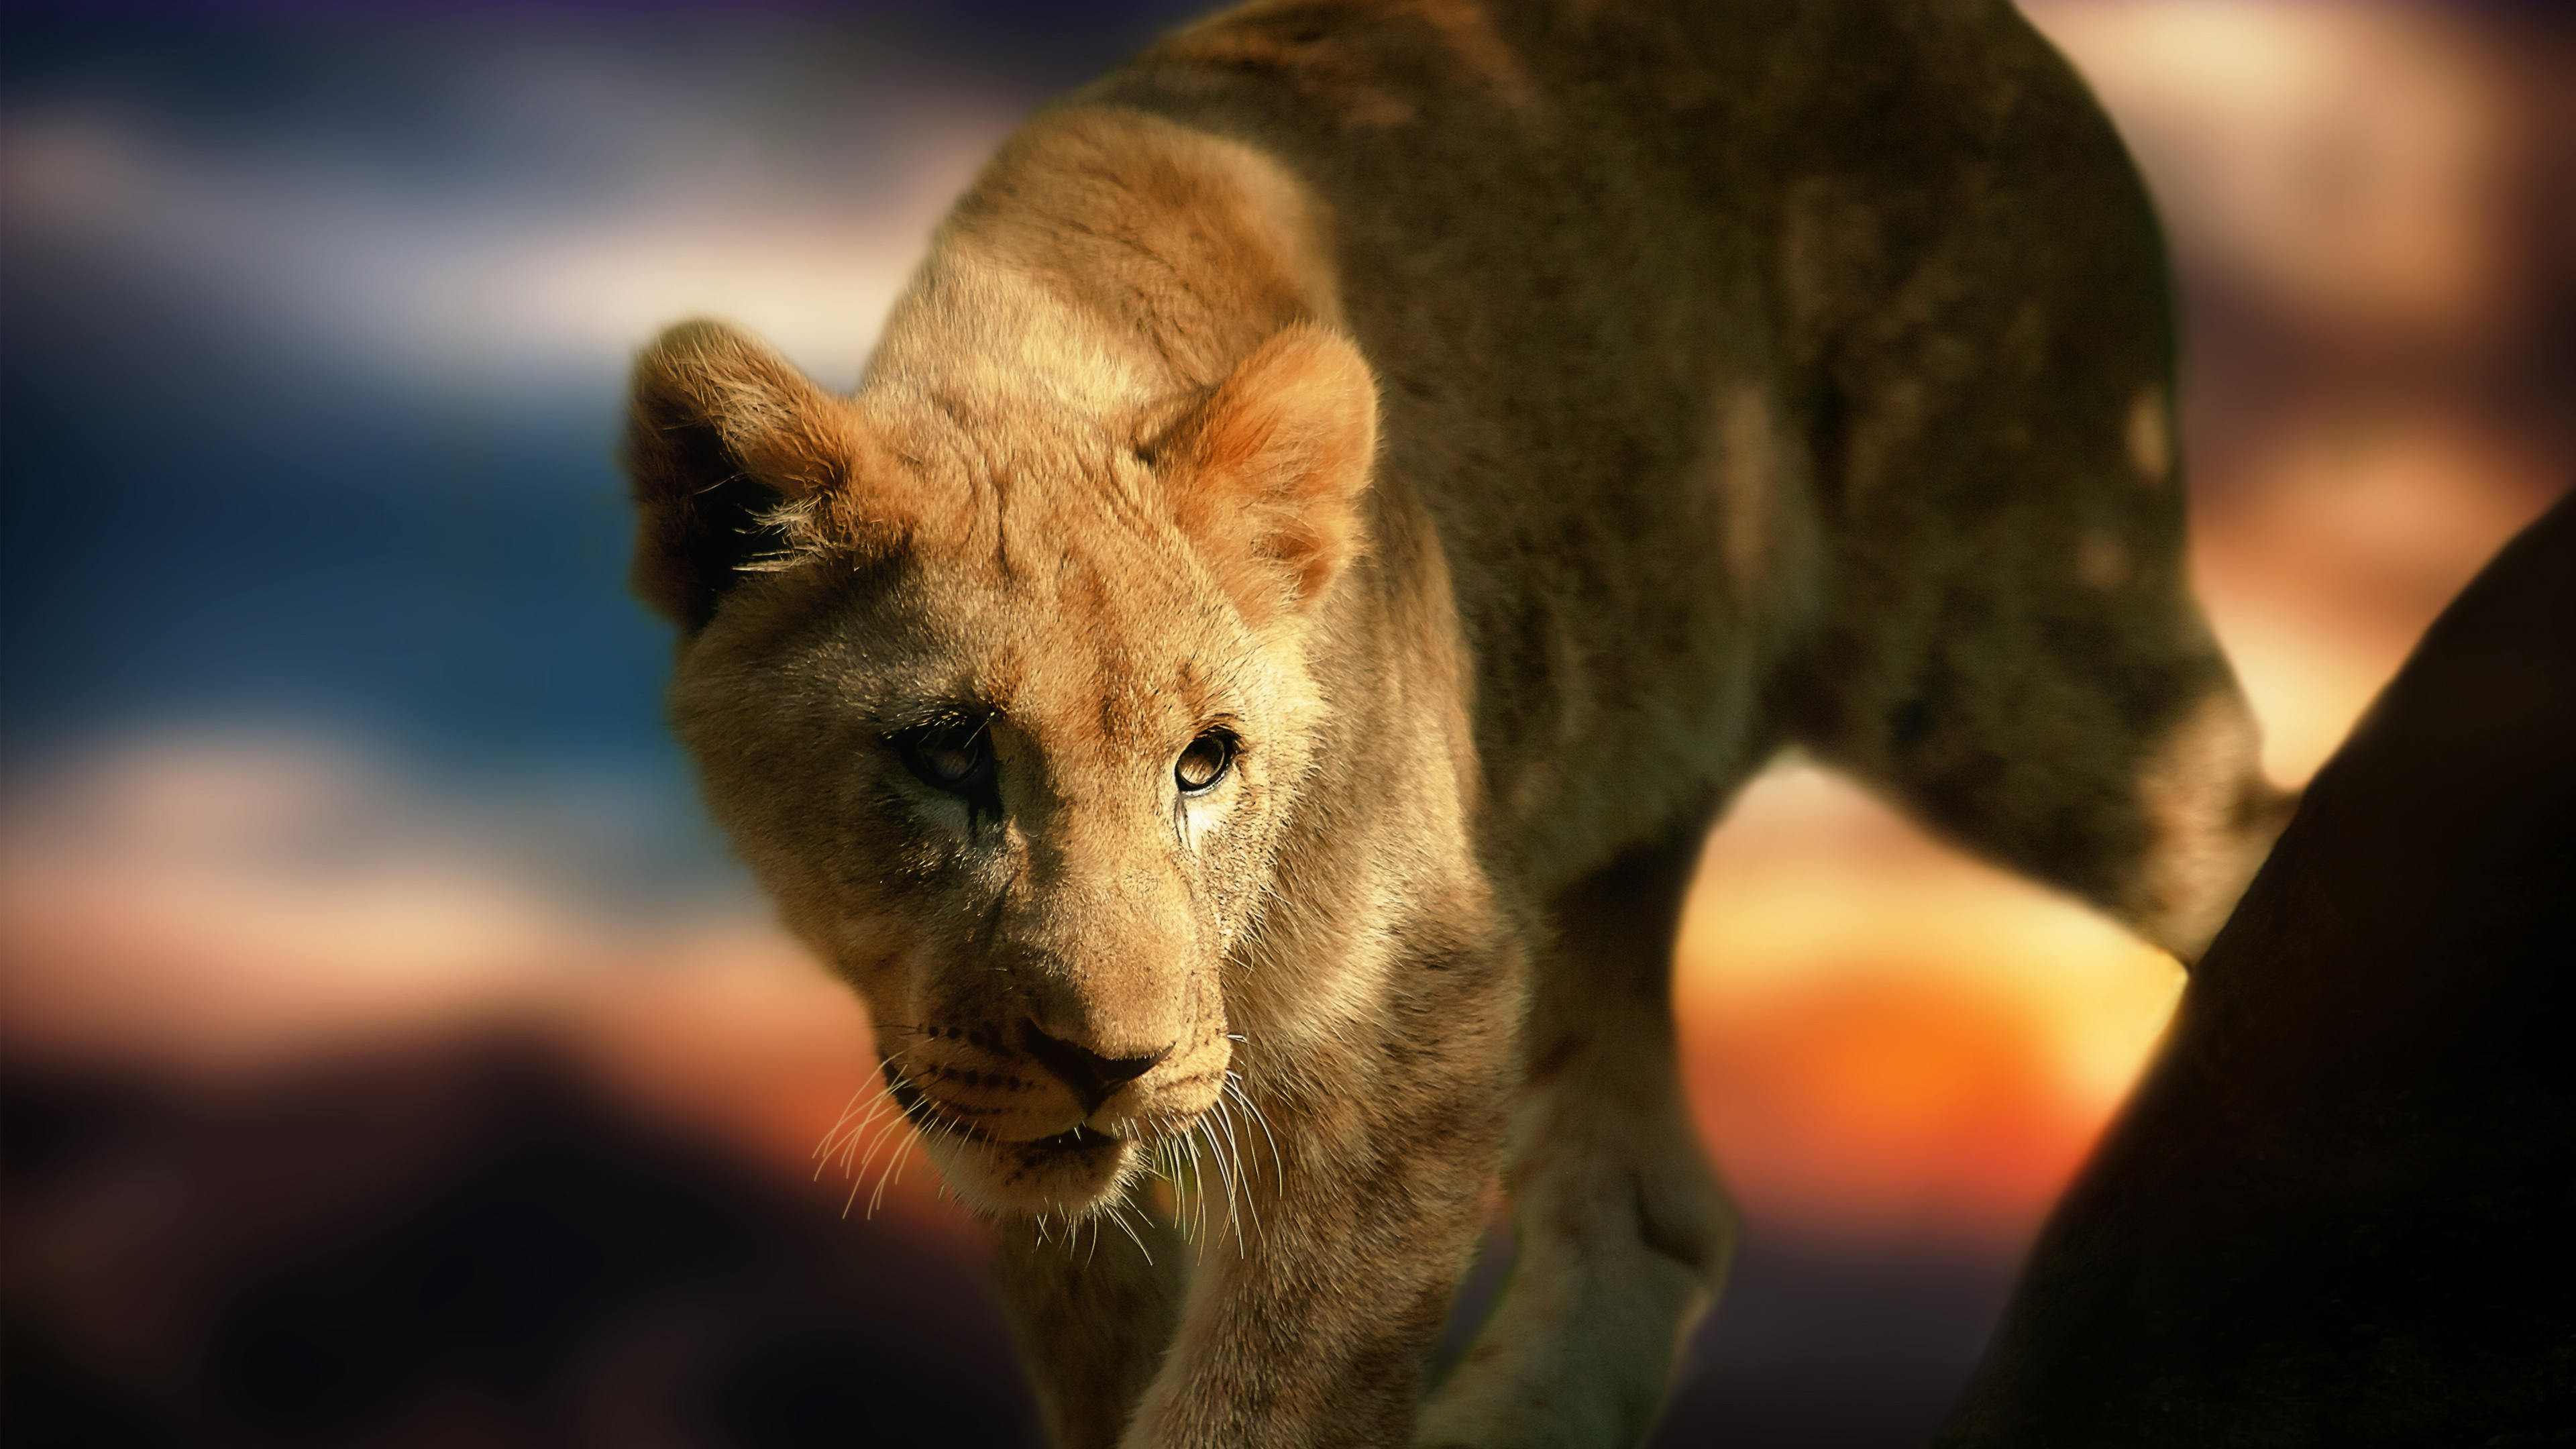 Jungle Wallpaper With Animals 20 Cool 4k Wallpapers The Nology